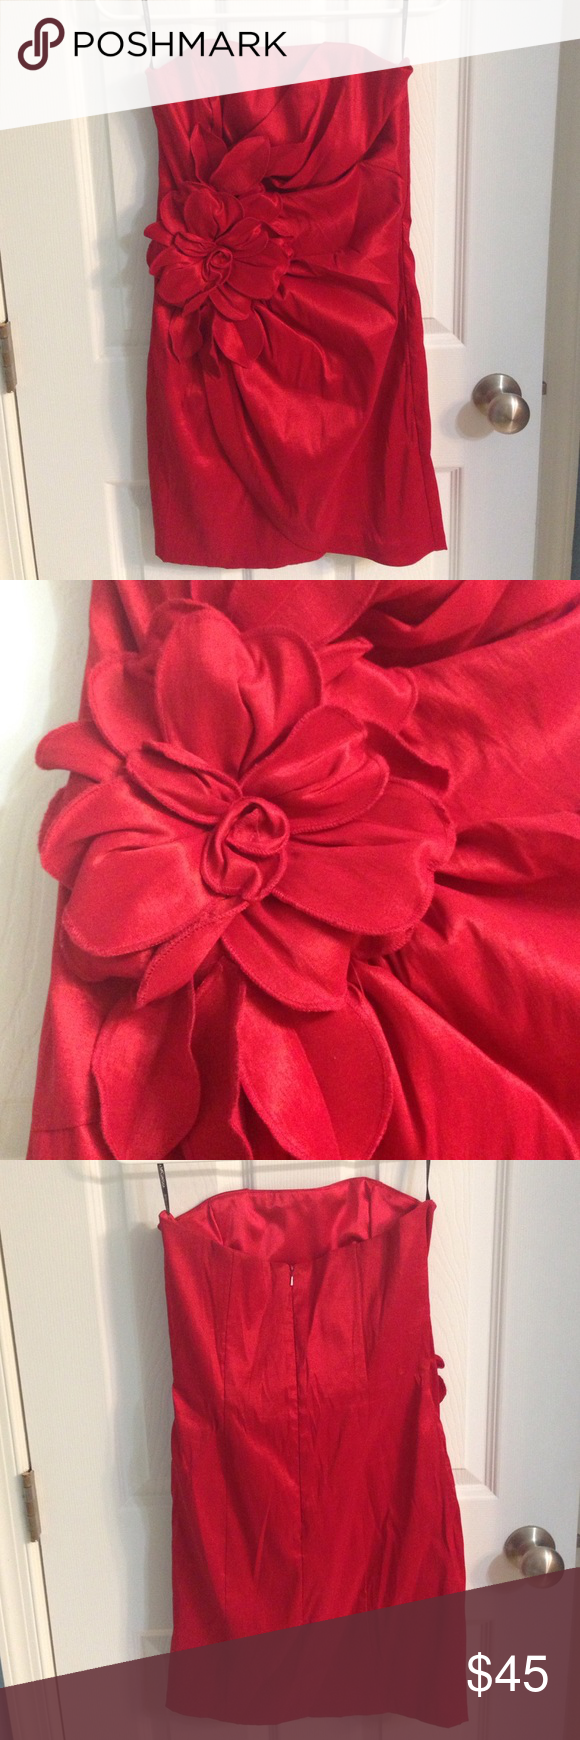 Jessica mcclintock red rose dress gently worn great condition rn